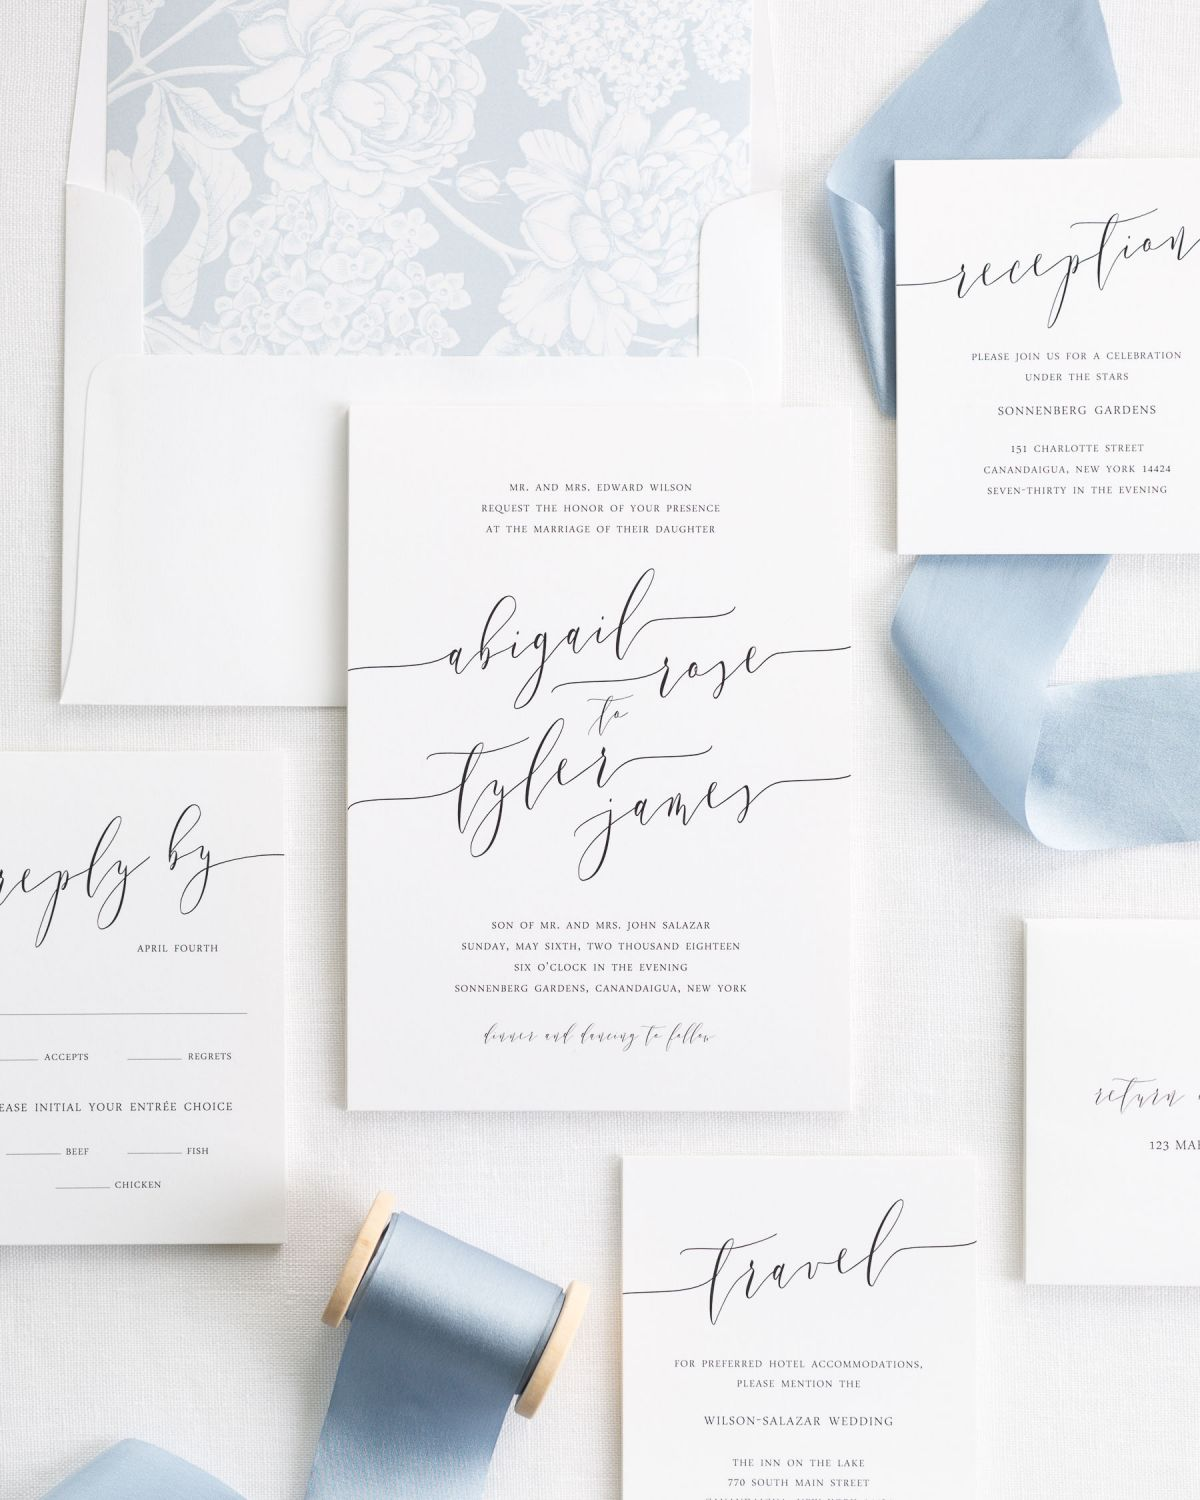 Calligraphy Wedding Invitations with Dusty Blue Silk Ribbon